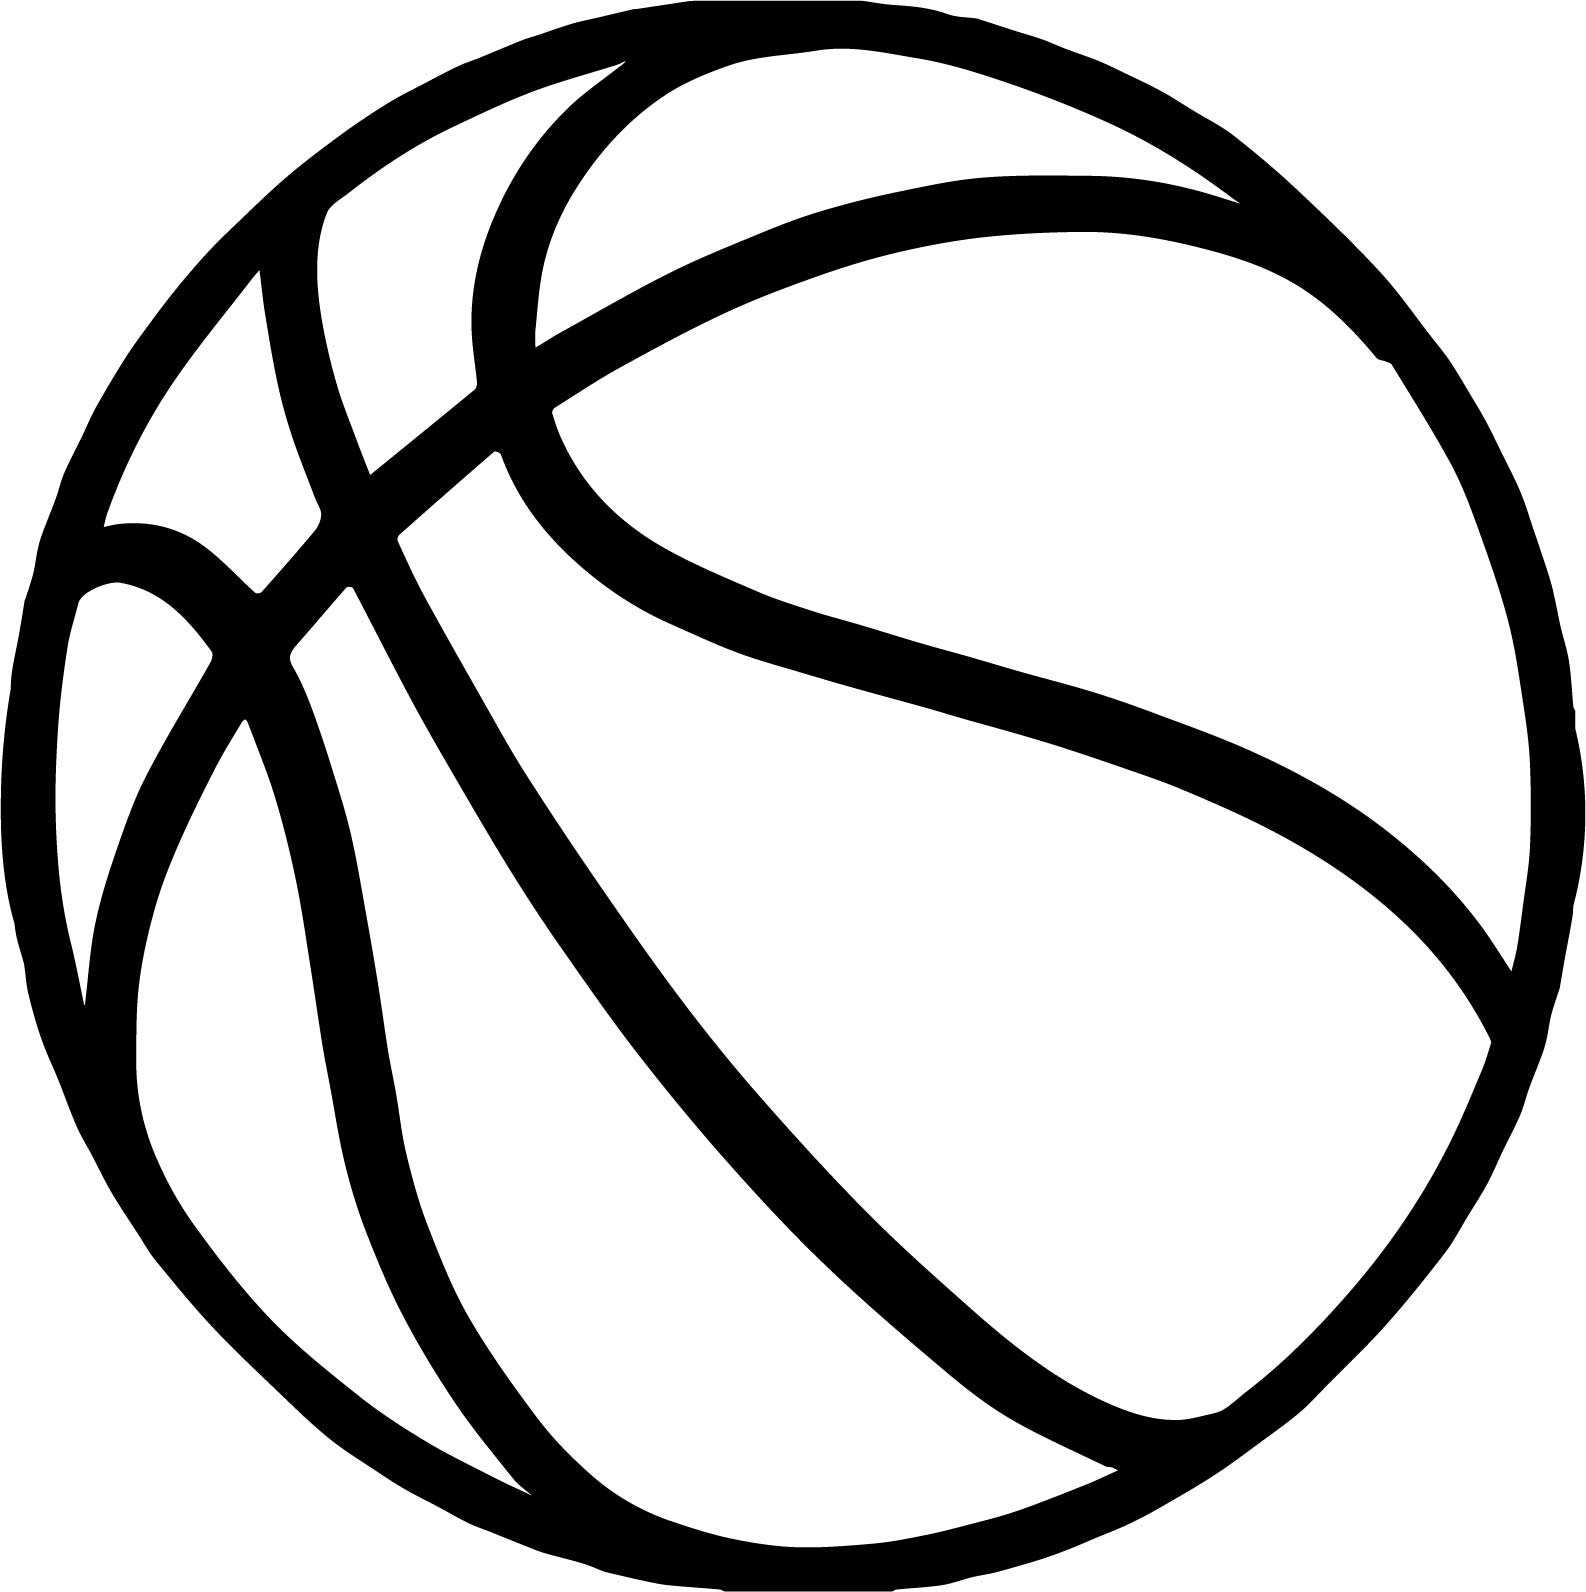 coloring pages of basketball basketball free to color for kids basketball kids pages coloring basketball of